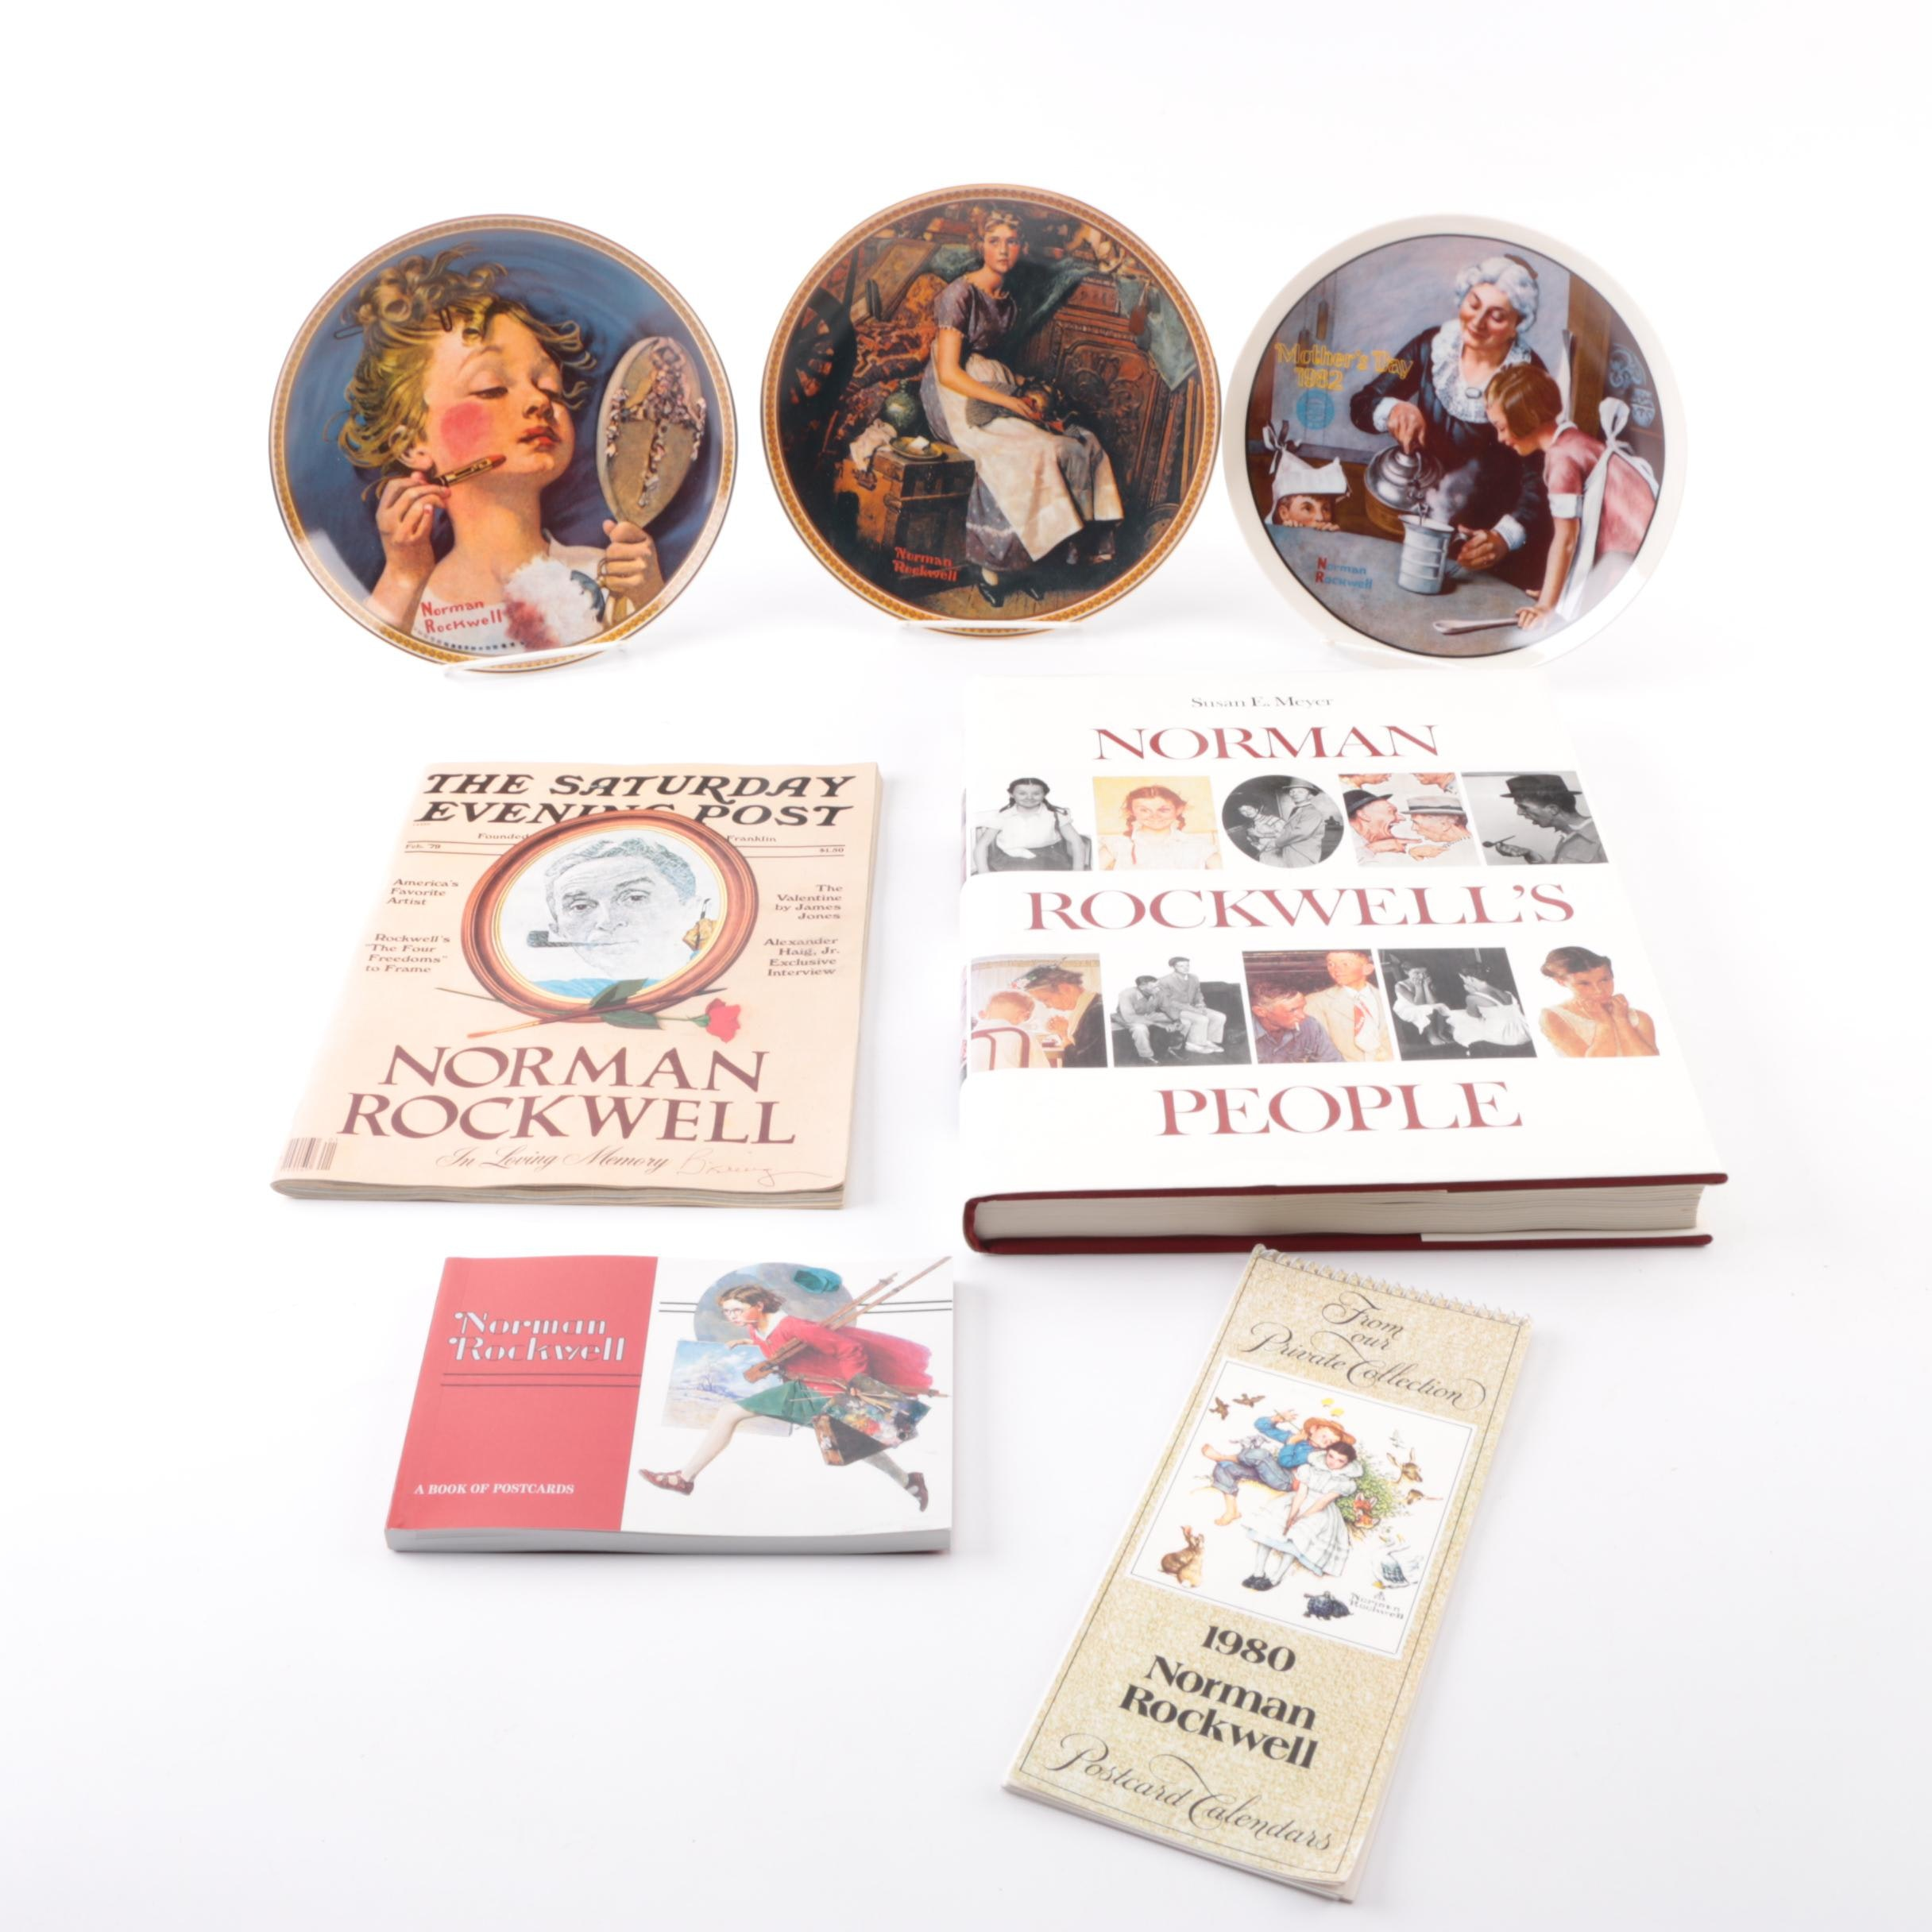 Norman Rockwell Porcelain Plates and Books